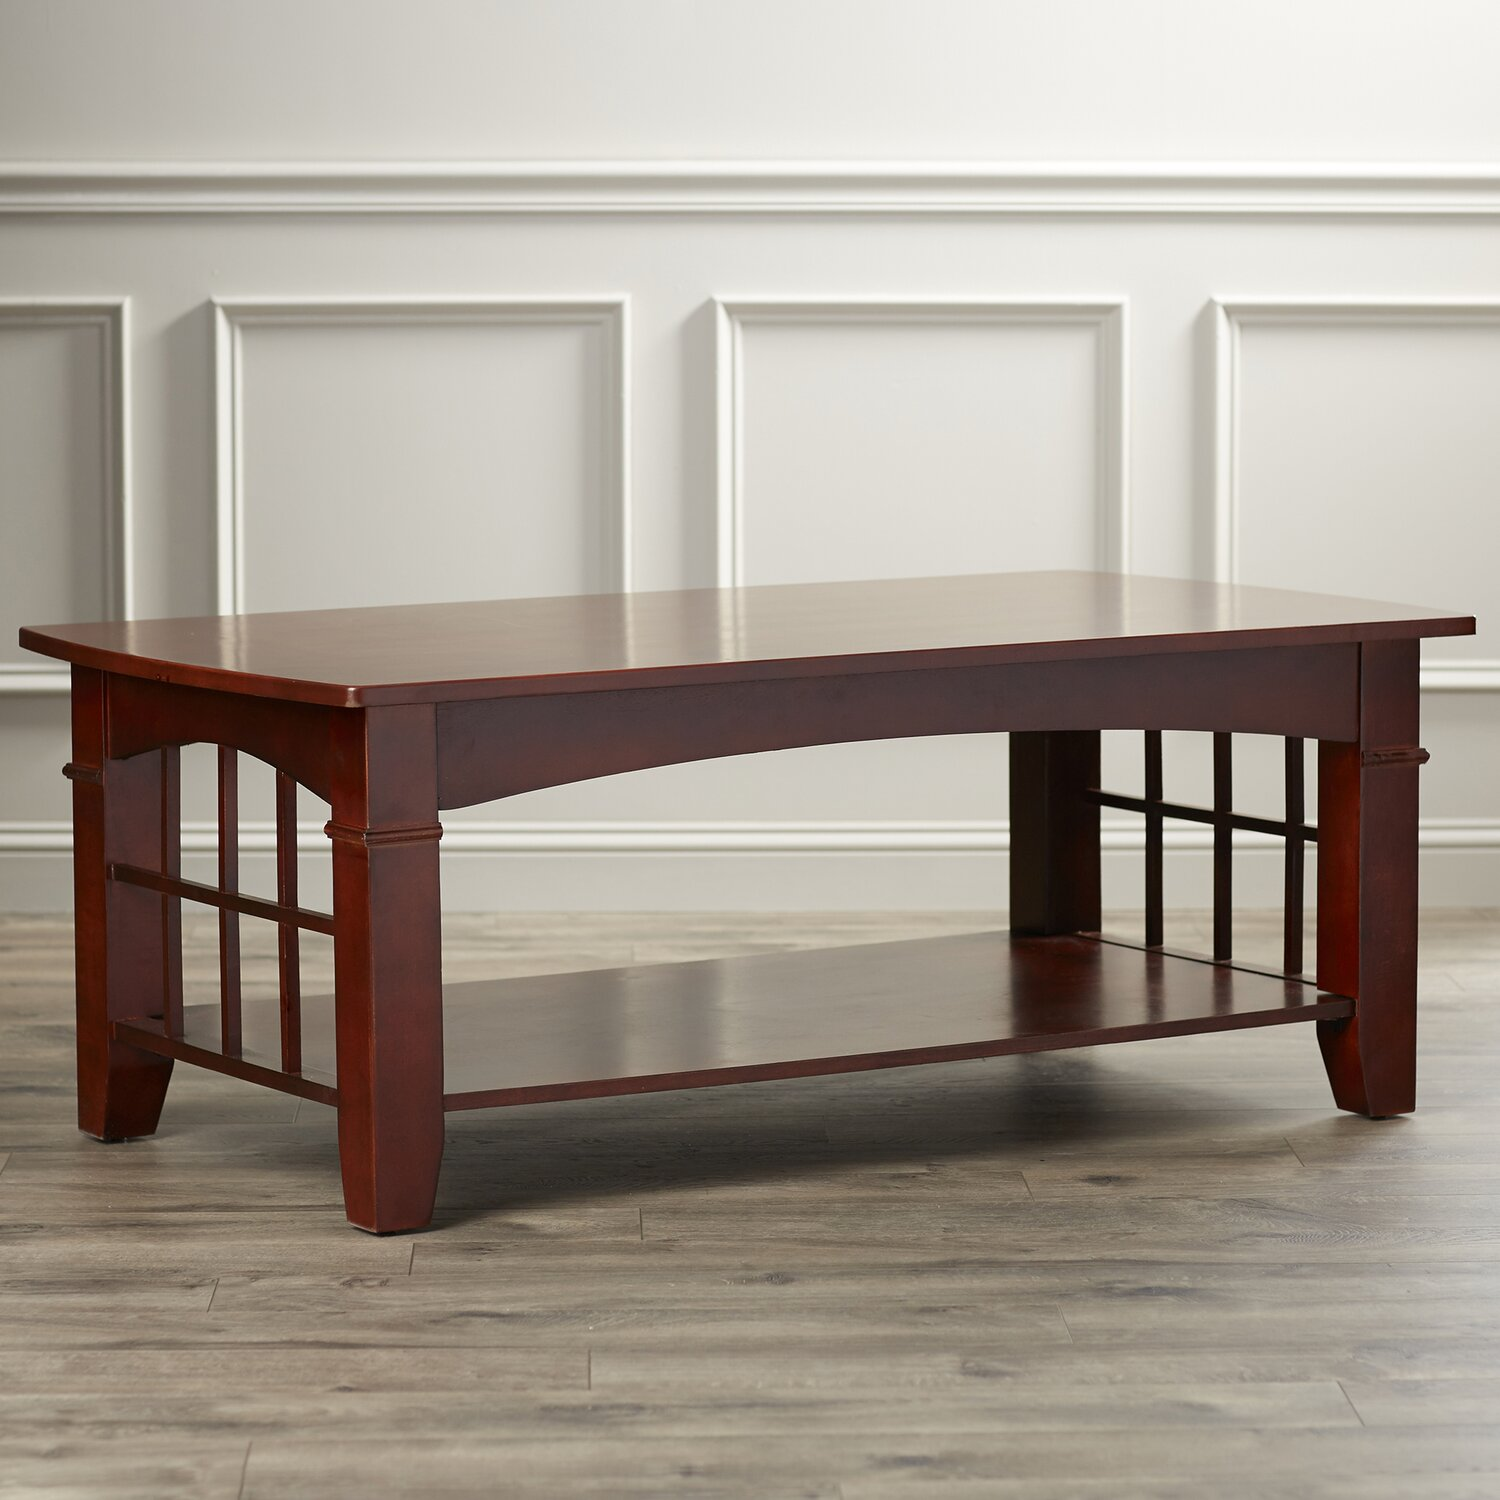 Charlton Home Anthony Coffee Table CHLH1093 25110892 25110892 CHLH1093